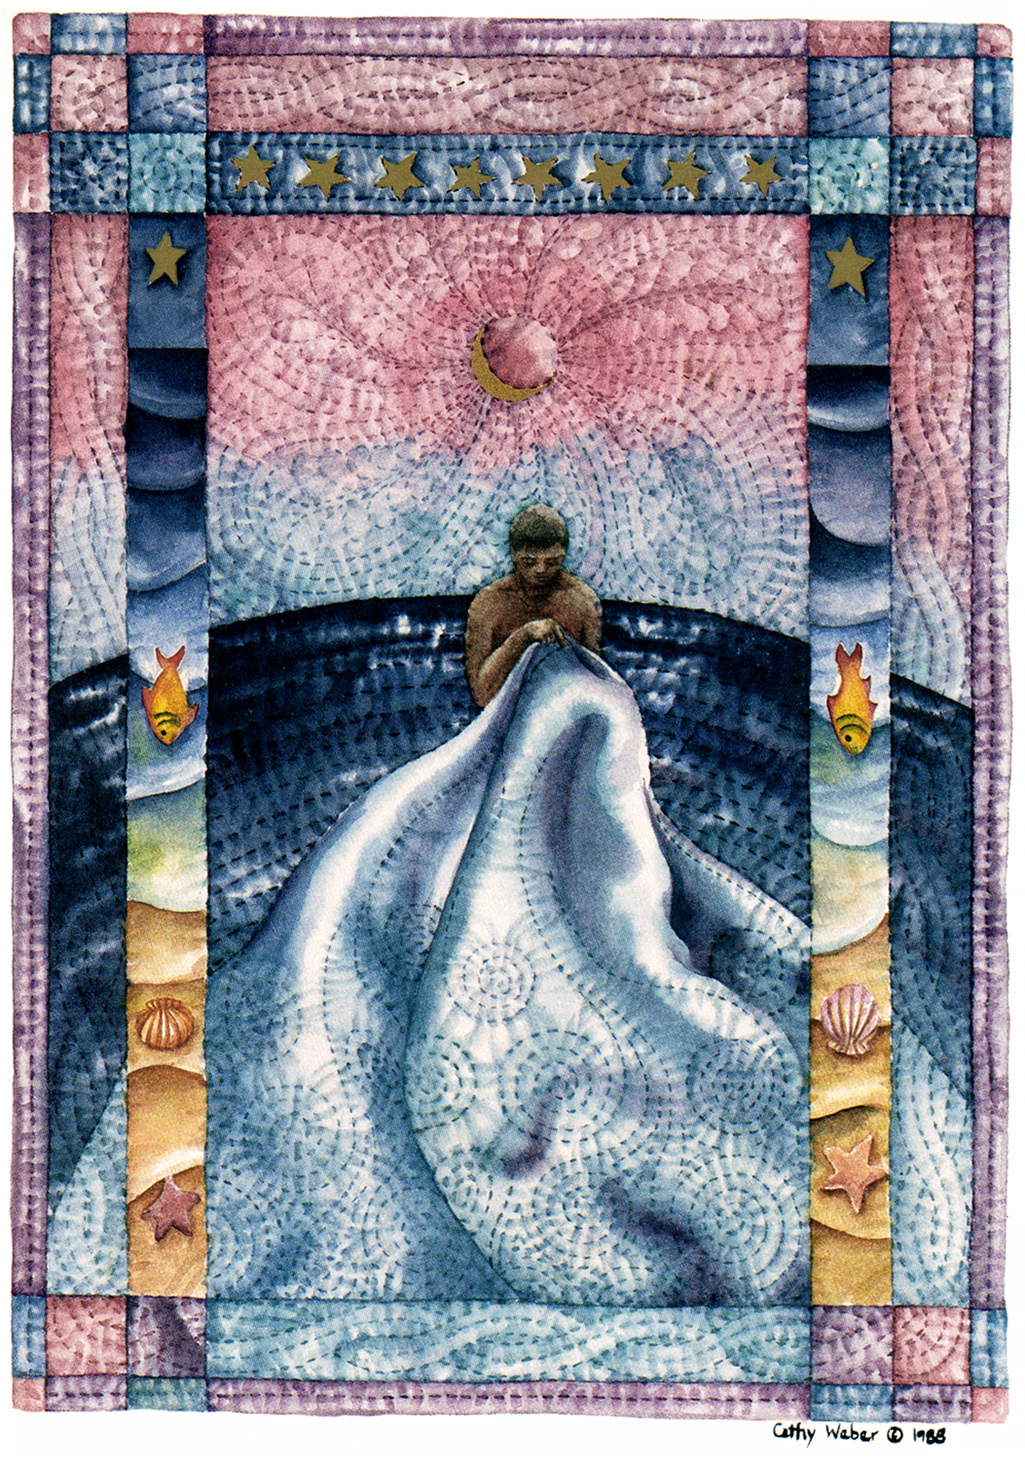 cathy weber - art - holy card - holycard - quilt - watercolor - creation - stitcher - stitch - montana- water - quilter